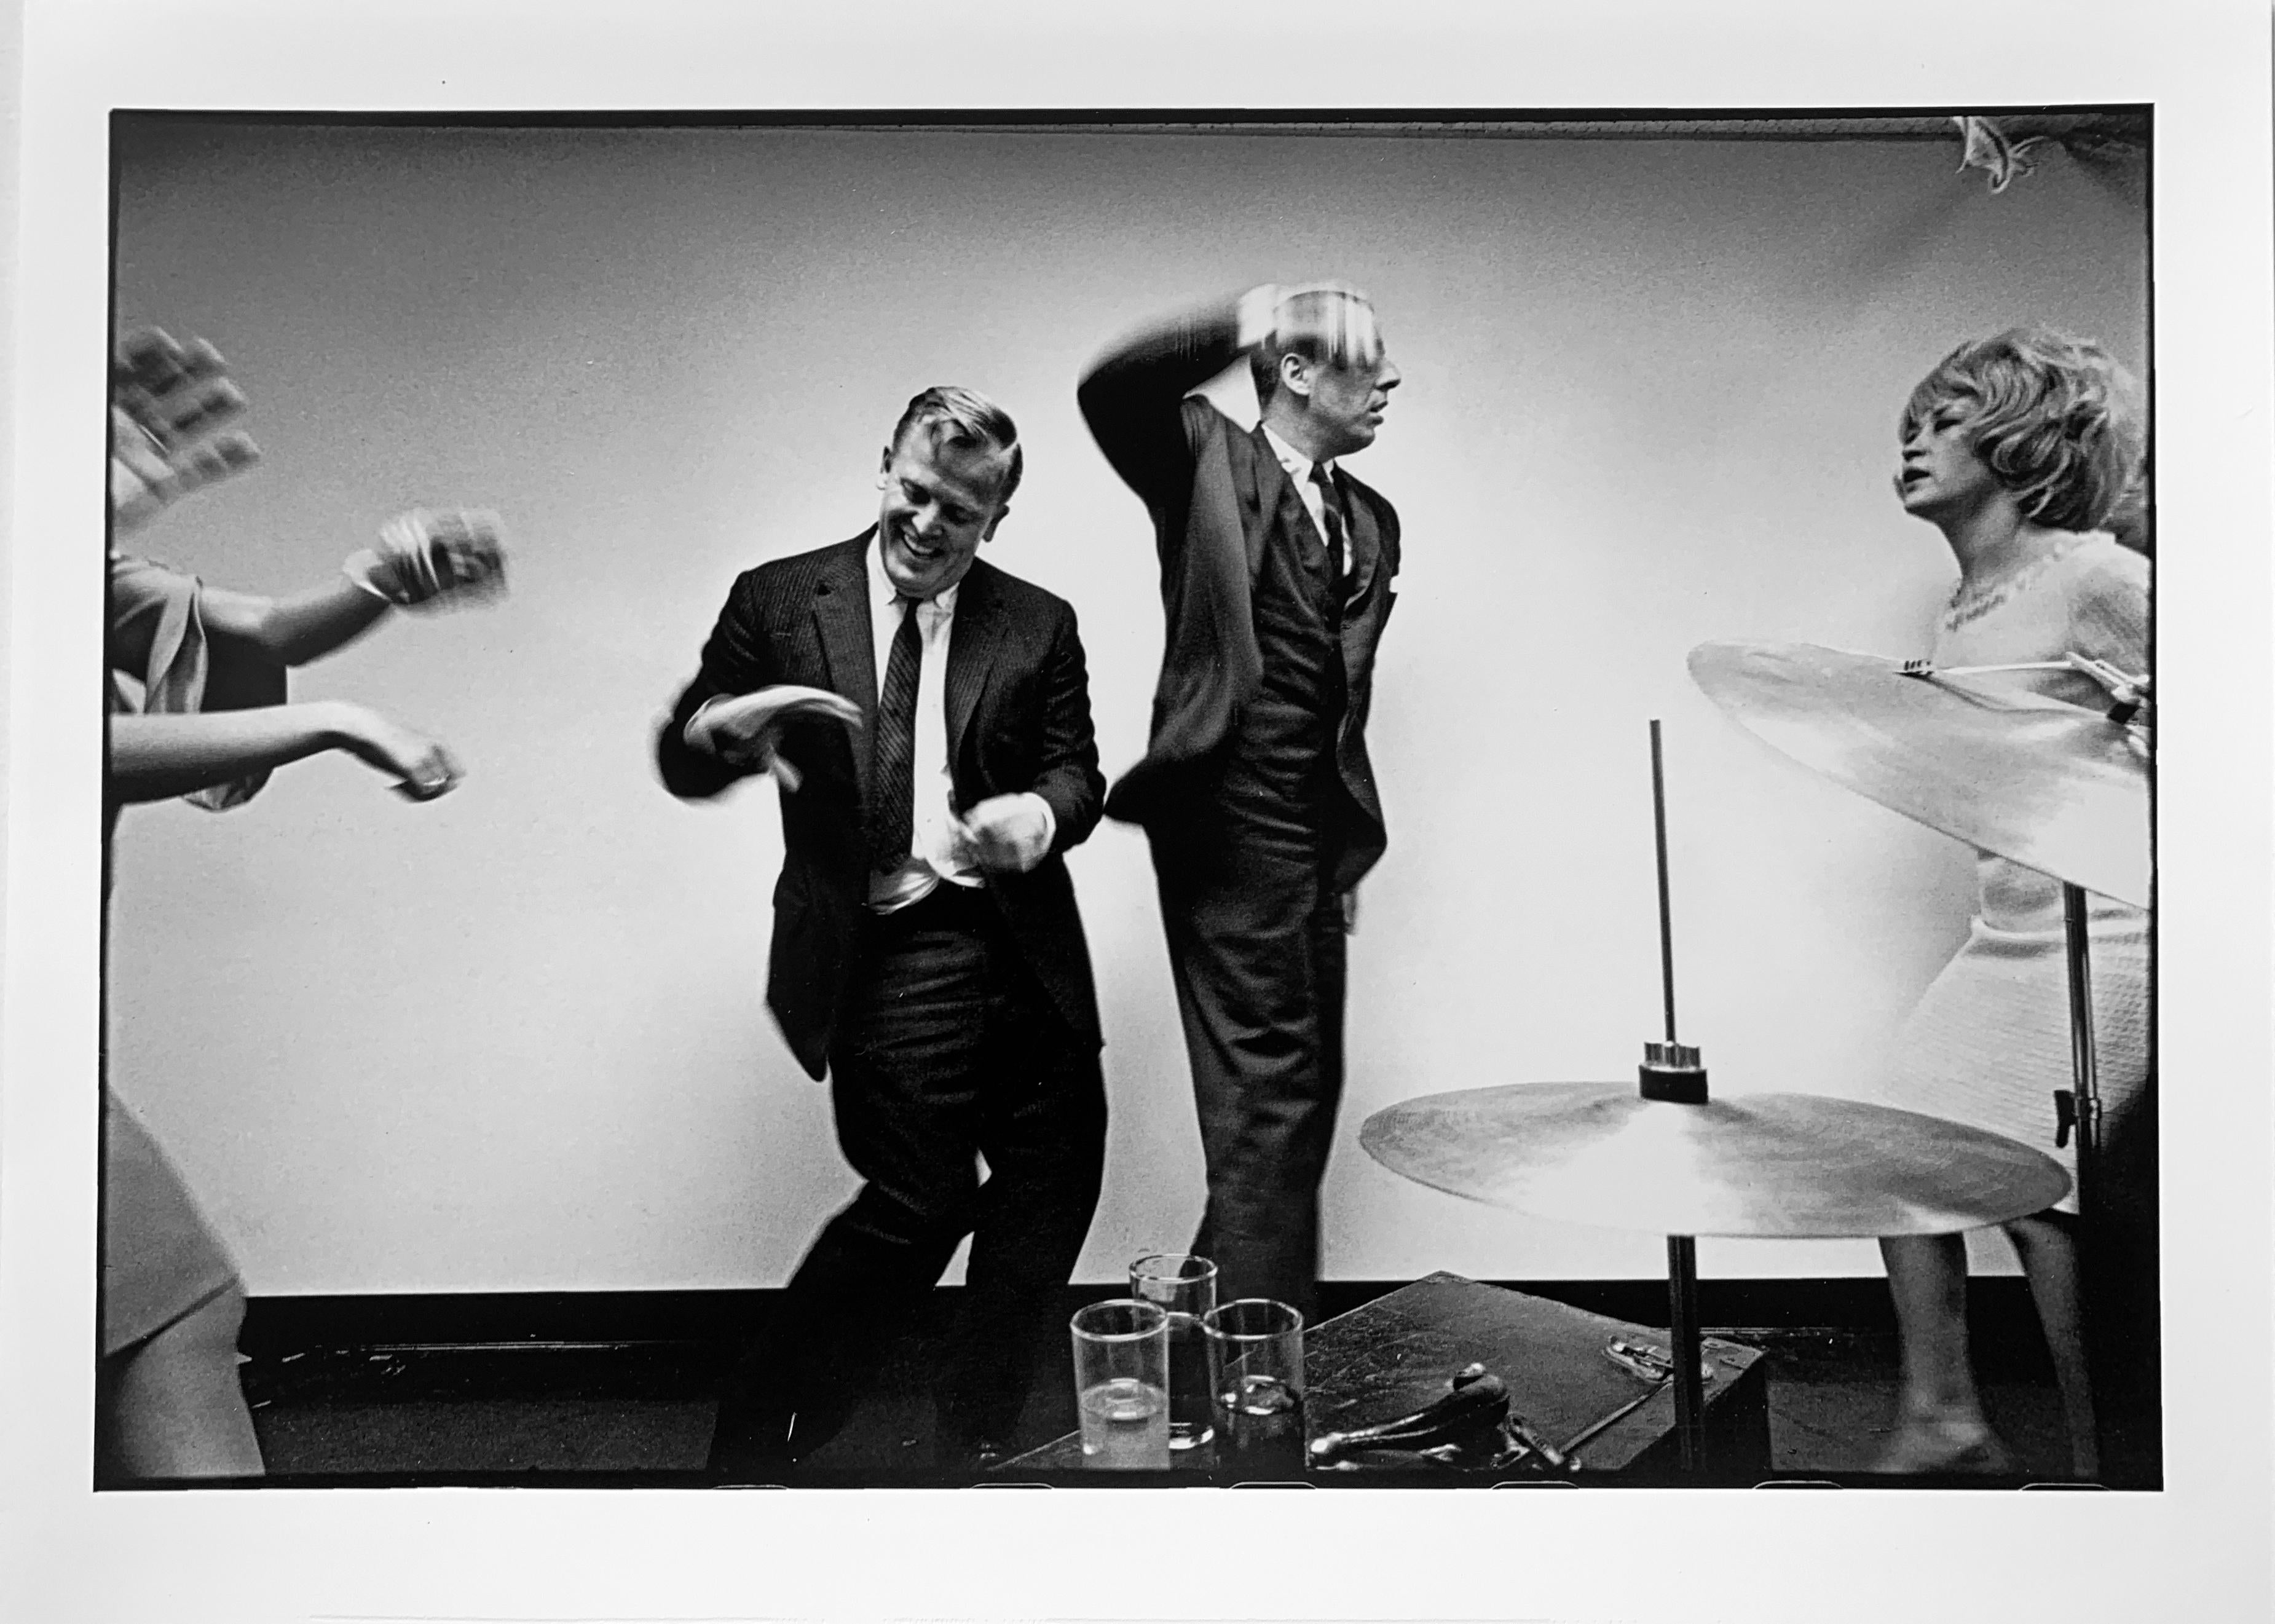 Office Party, New York City, Black and White Photography 1960s Dance Party